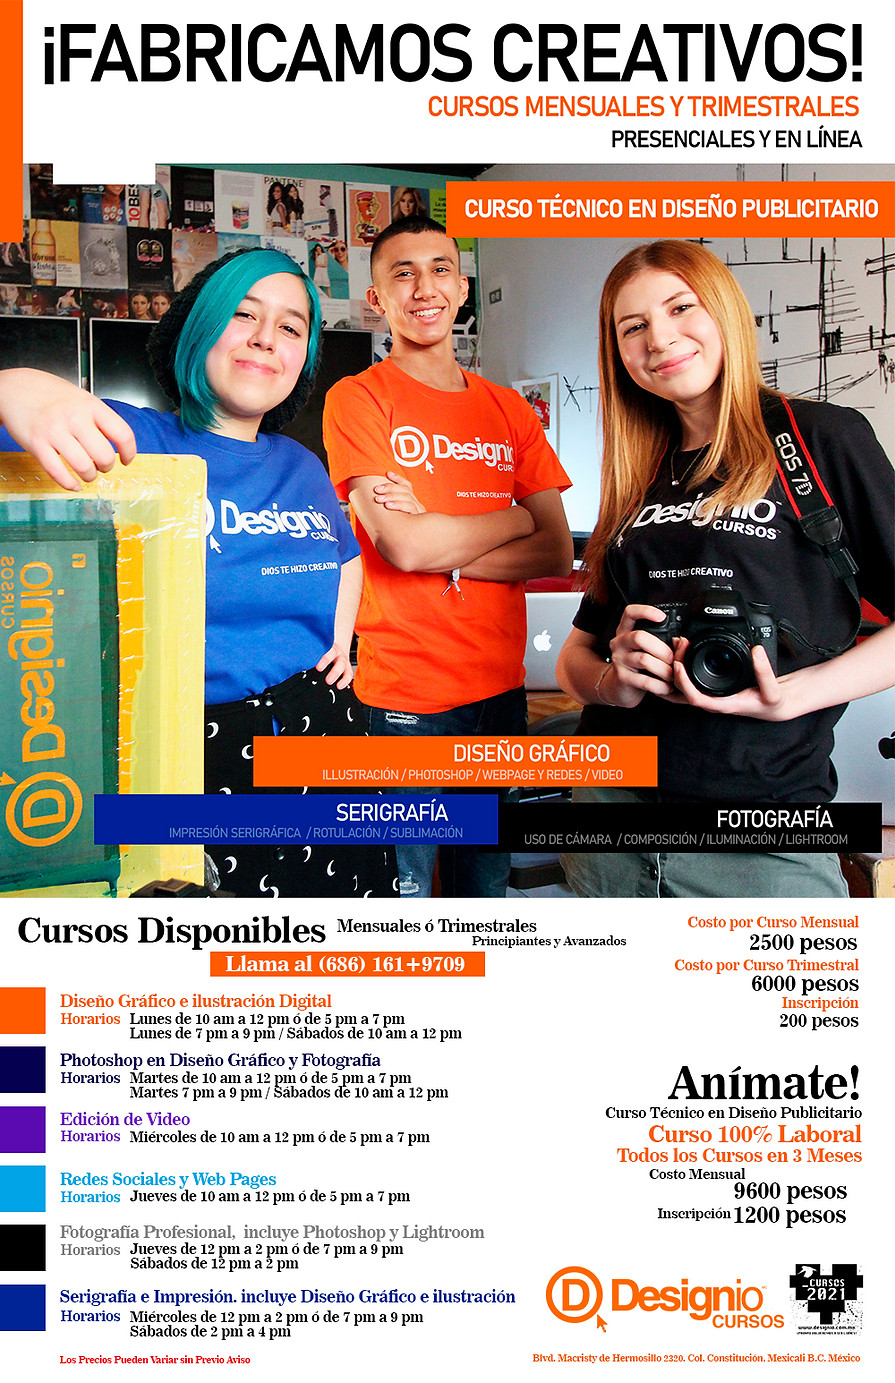 posterfabricamos1000.png